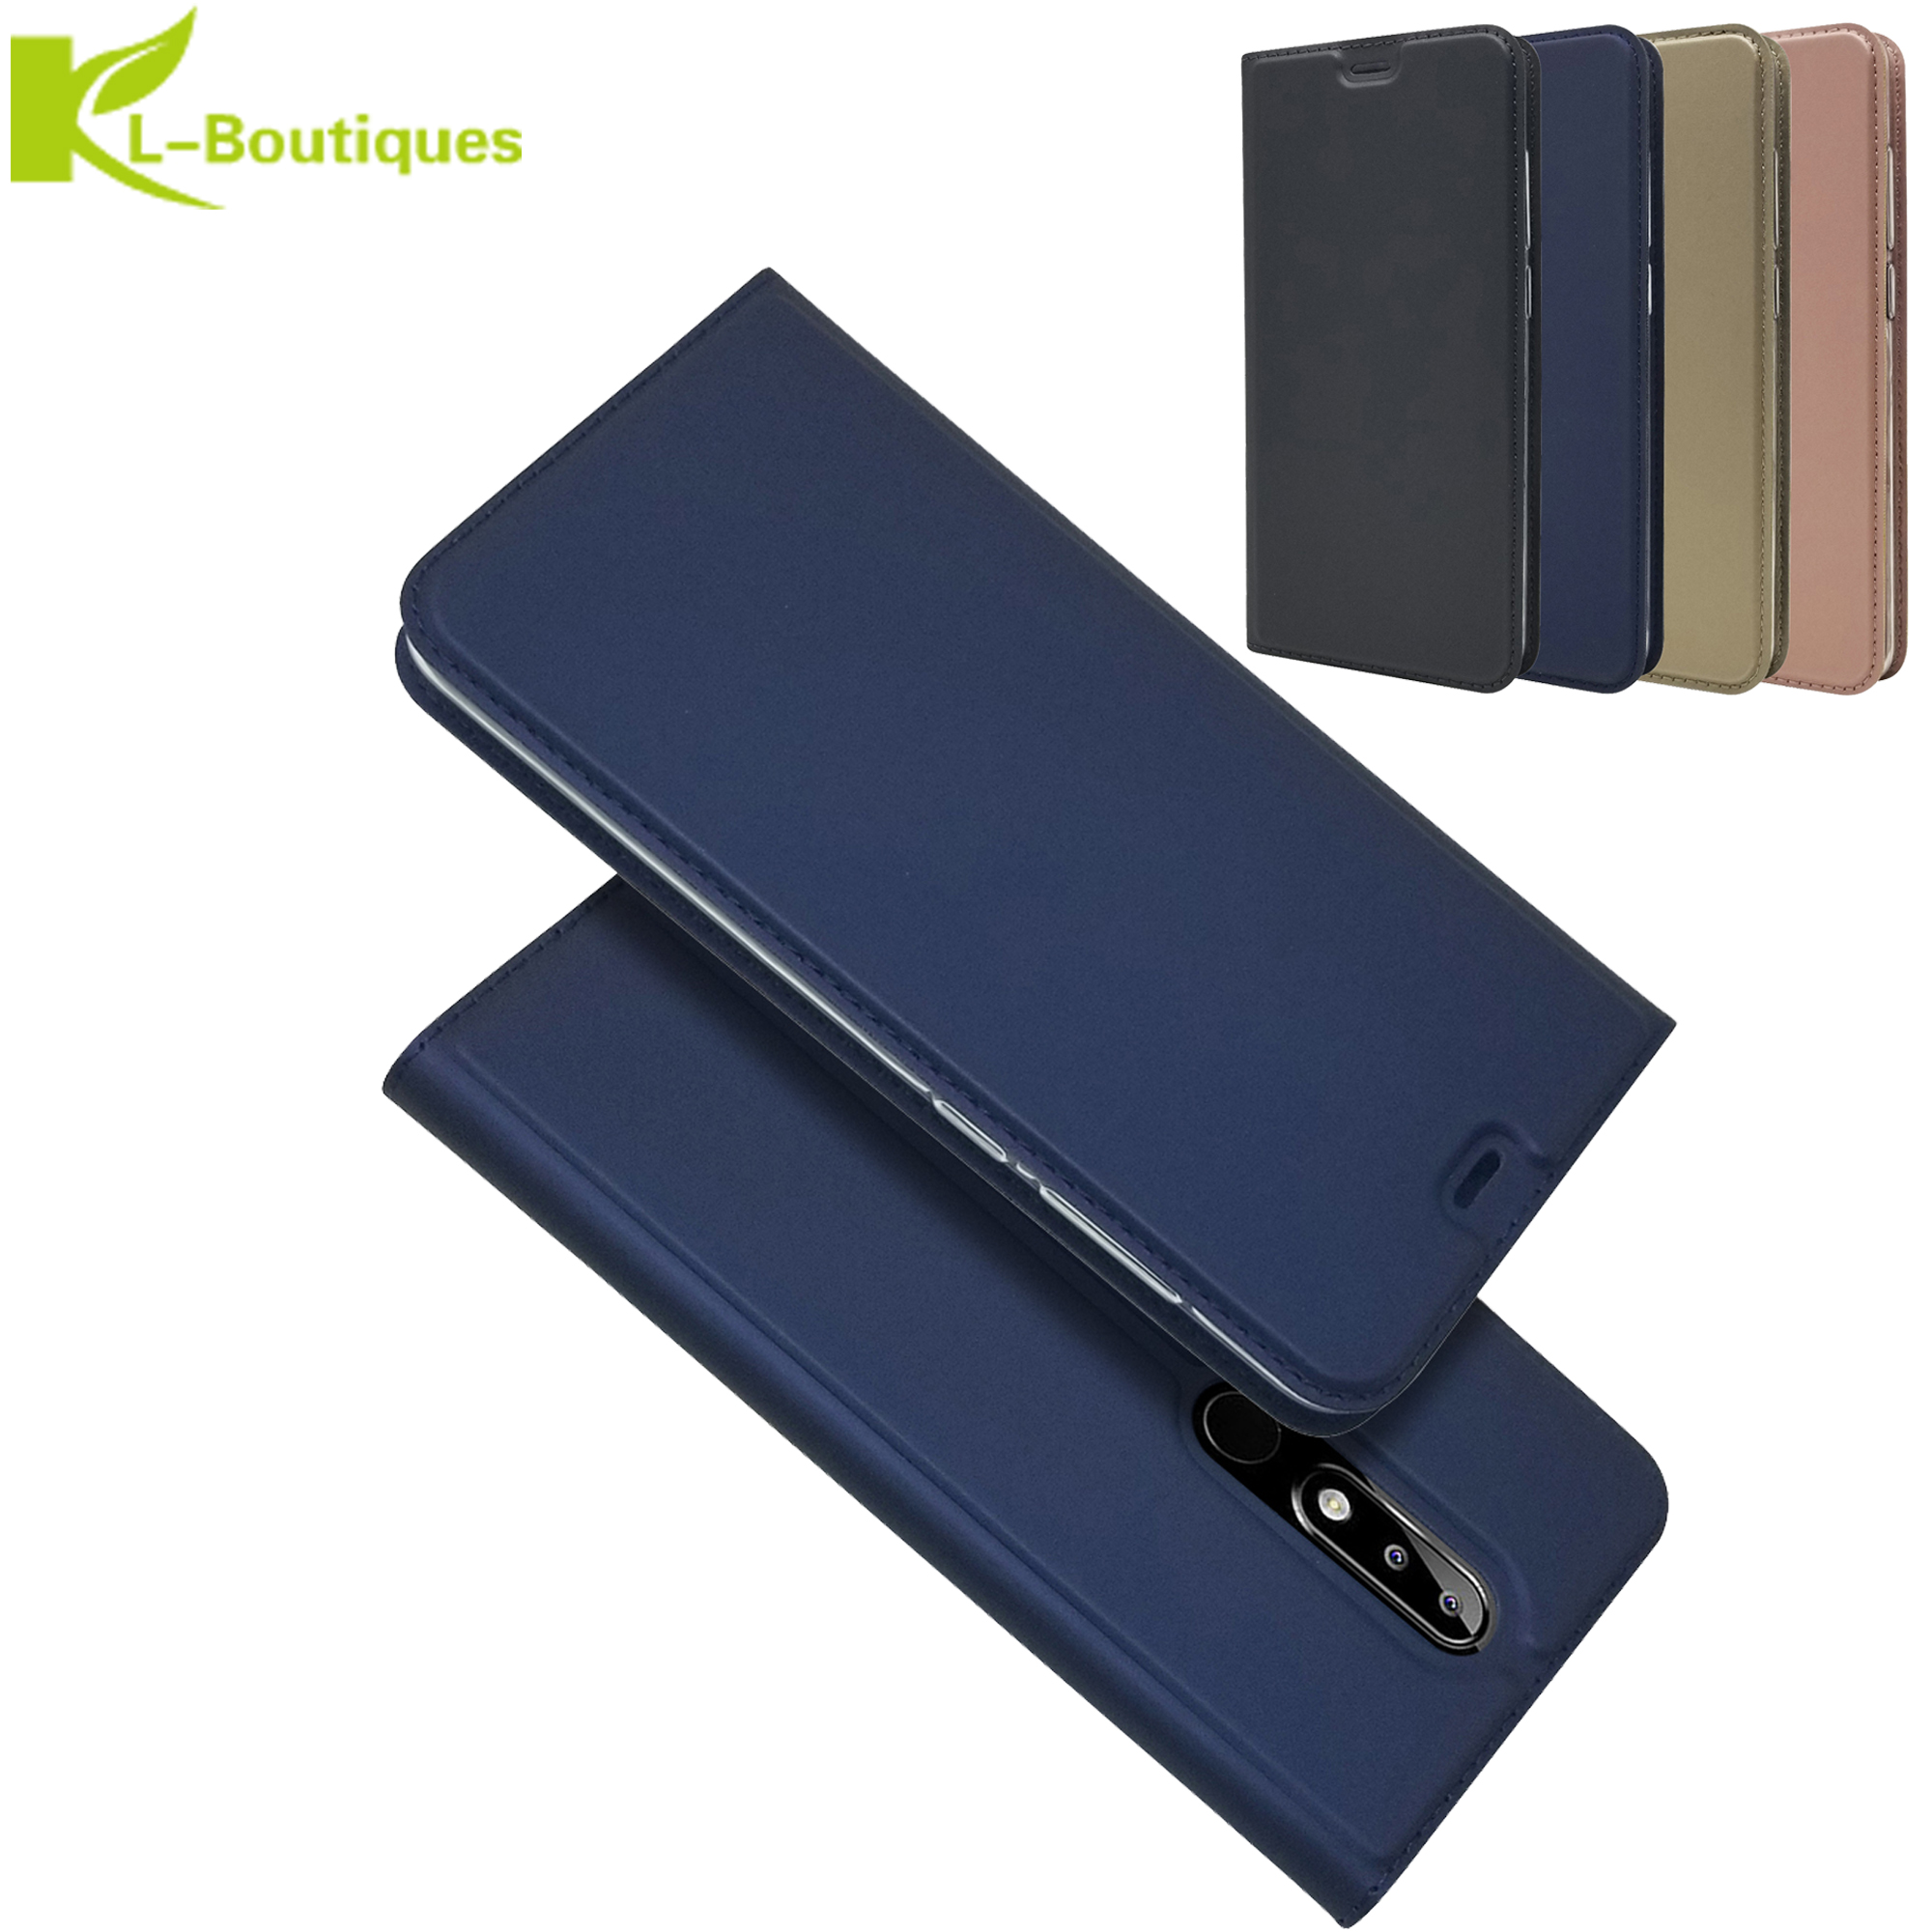 Slim Magnetic Case Coque For <font><b>Nokia</b></font> 5 TA-<font><b>1053</b></font> TA-1024 cover For <font><b>Nokia</b></font> 5.1 Plus X5 TA-1109 shell Fundas for <font><b>Nokia</b></font> 5.1 Phone cases image